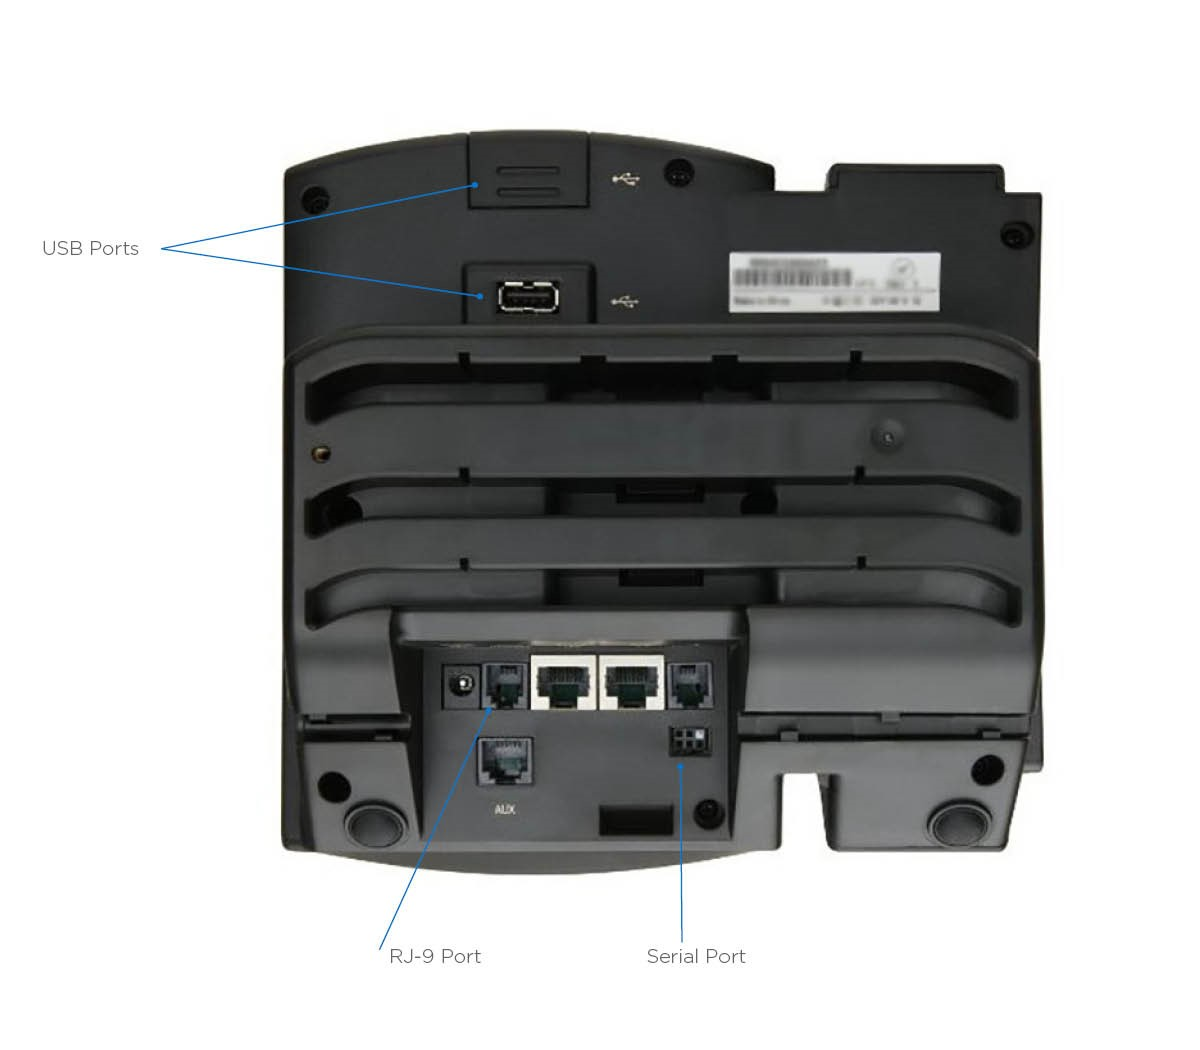 Polycom VVX back view. Shows USB ports, RJ-9 port and Serial Ports. Image opens in full resolution in a new tab